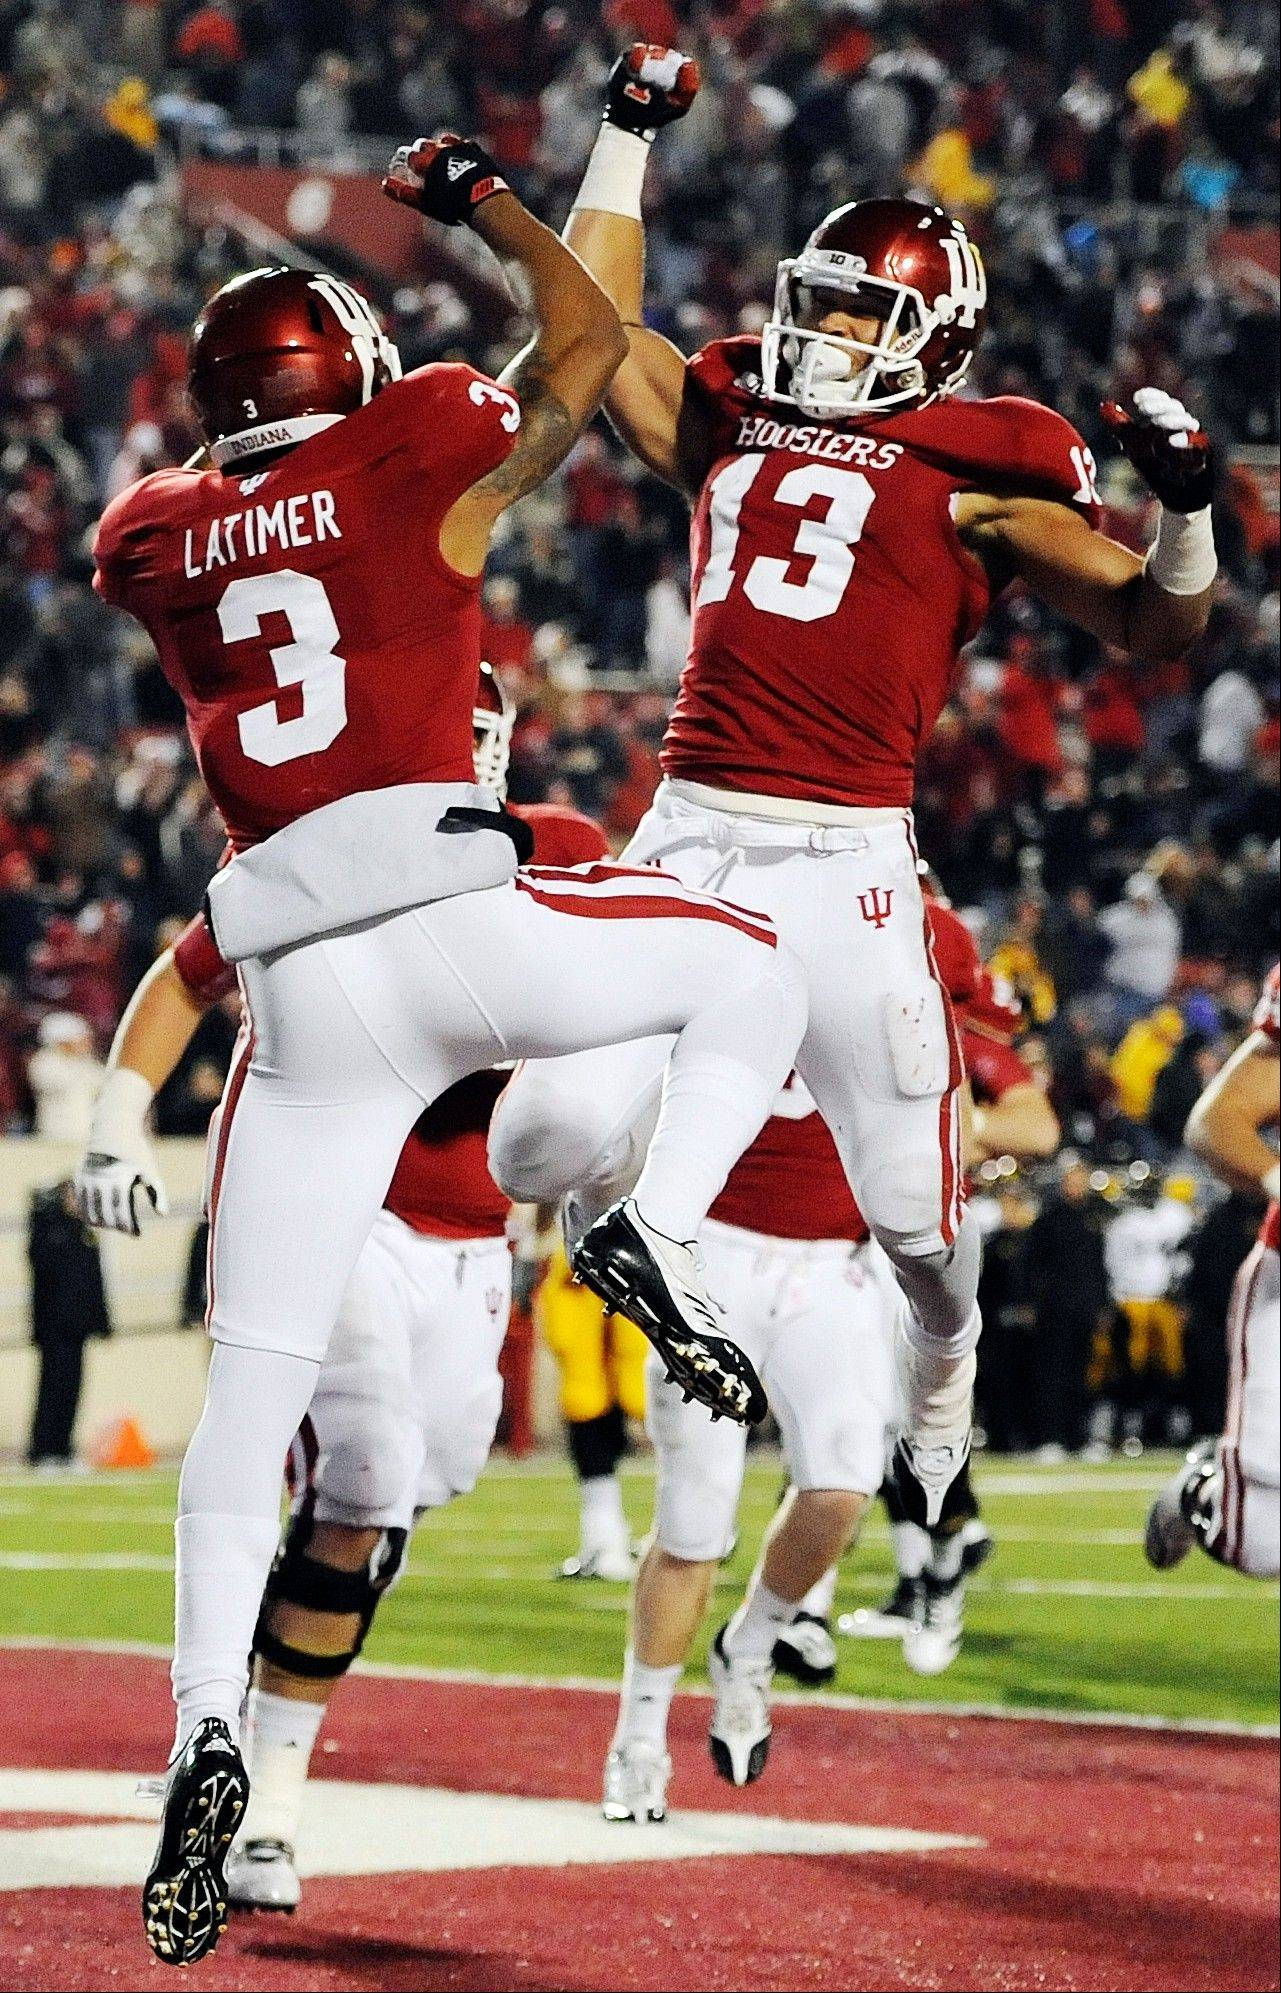 Indiana wide receiver Cody Latimer and wide receiver Kofi Hughes celebrate Latimer's touchdown catch against Iowa Saturday during in Bloomington, Ind. Indiana won 24-21.